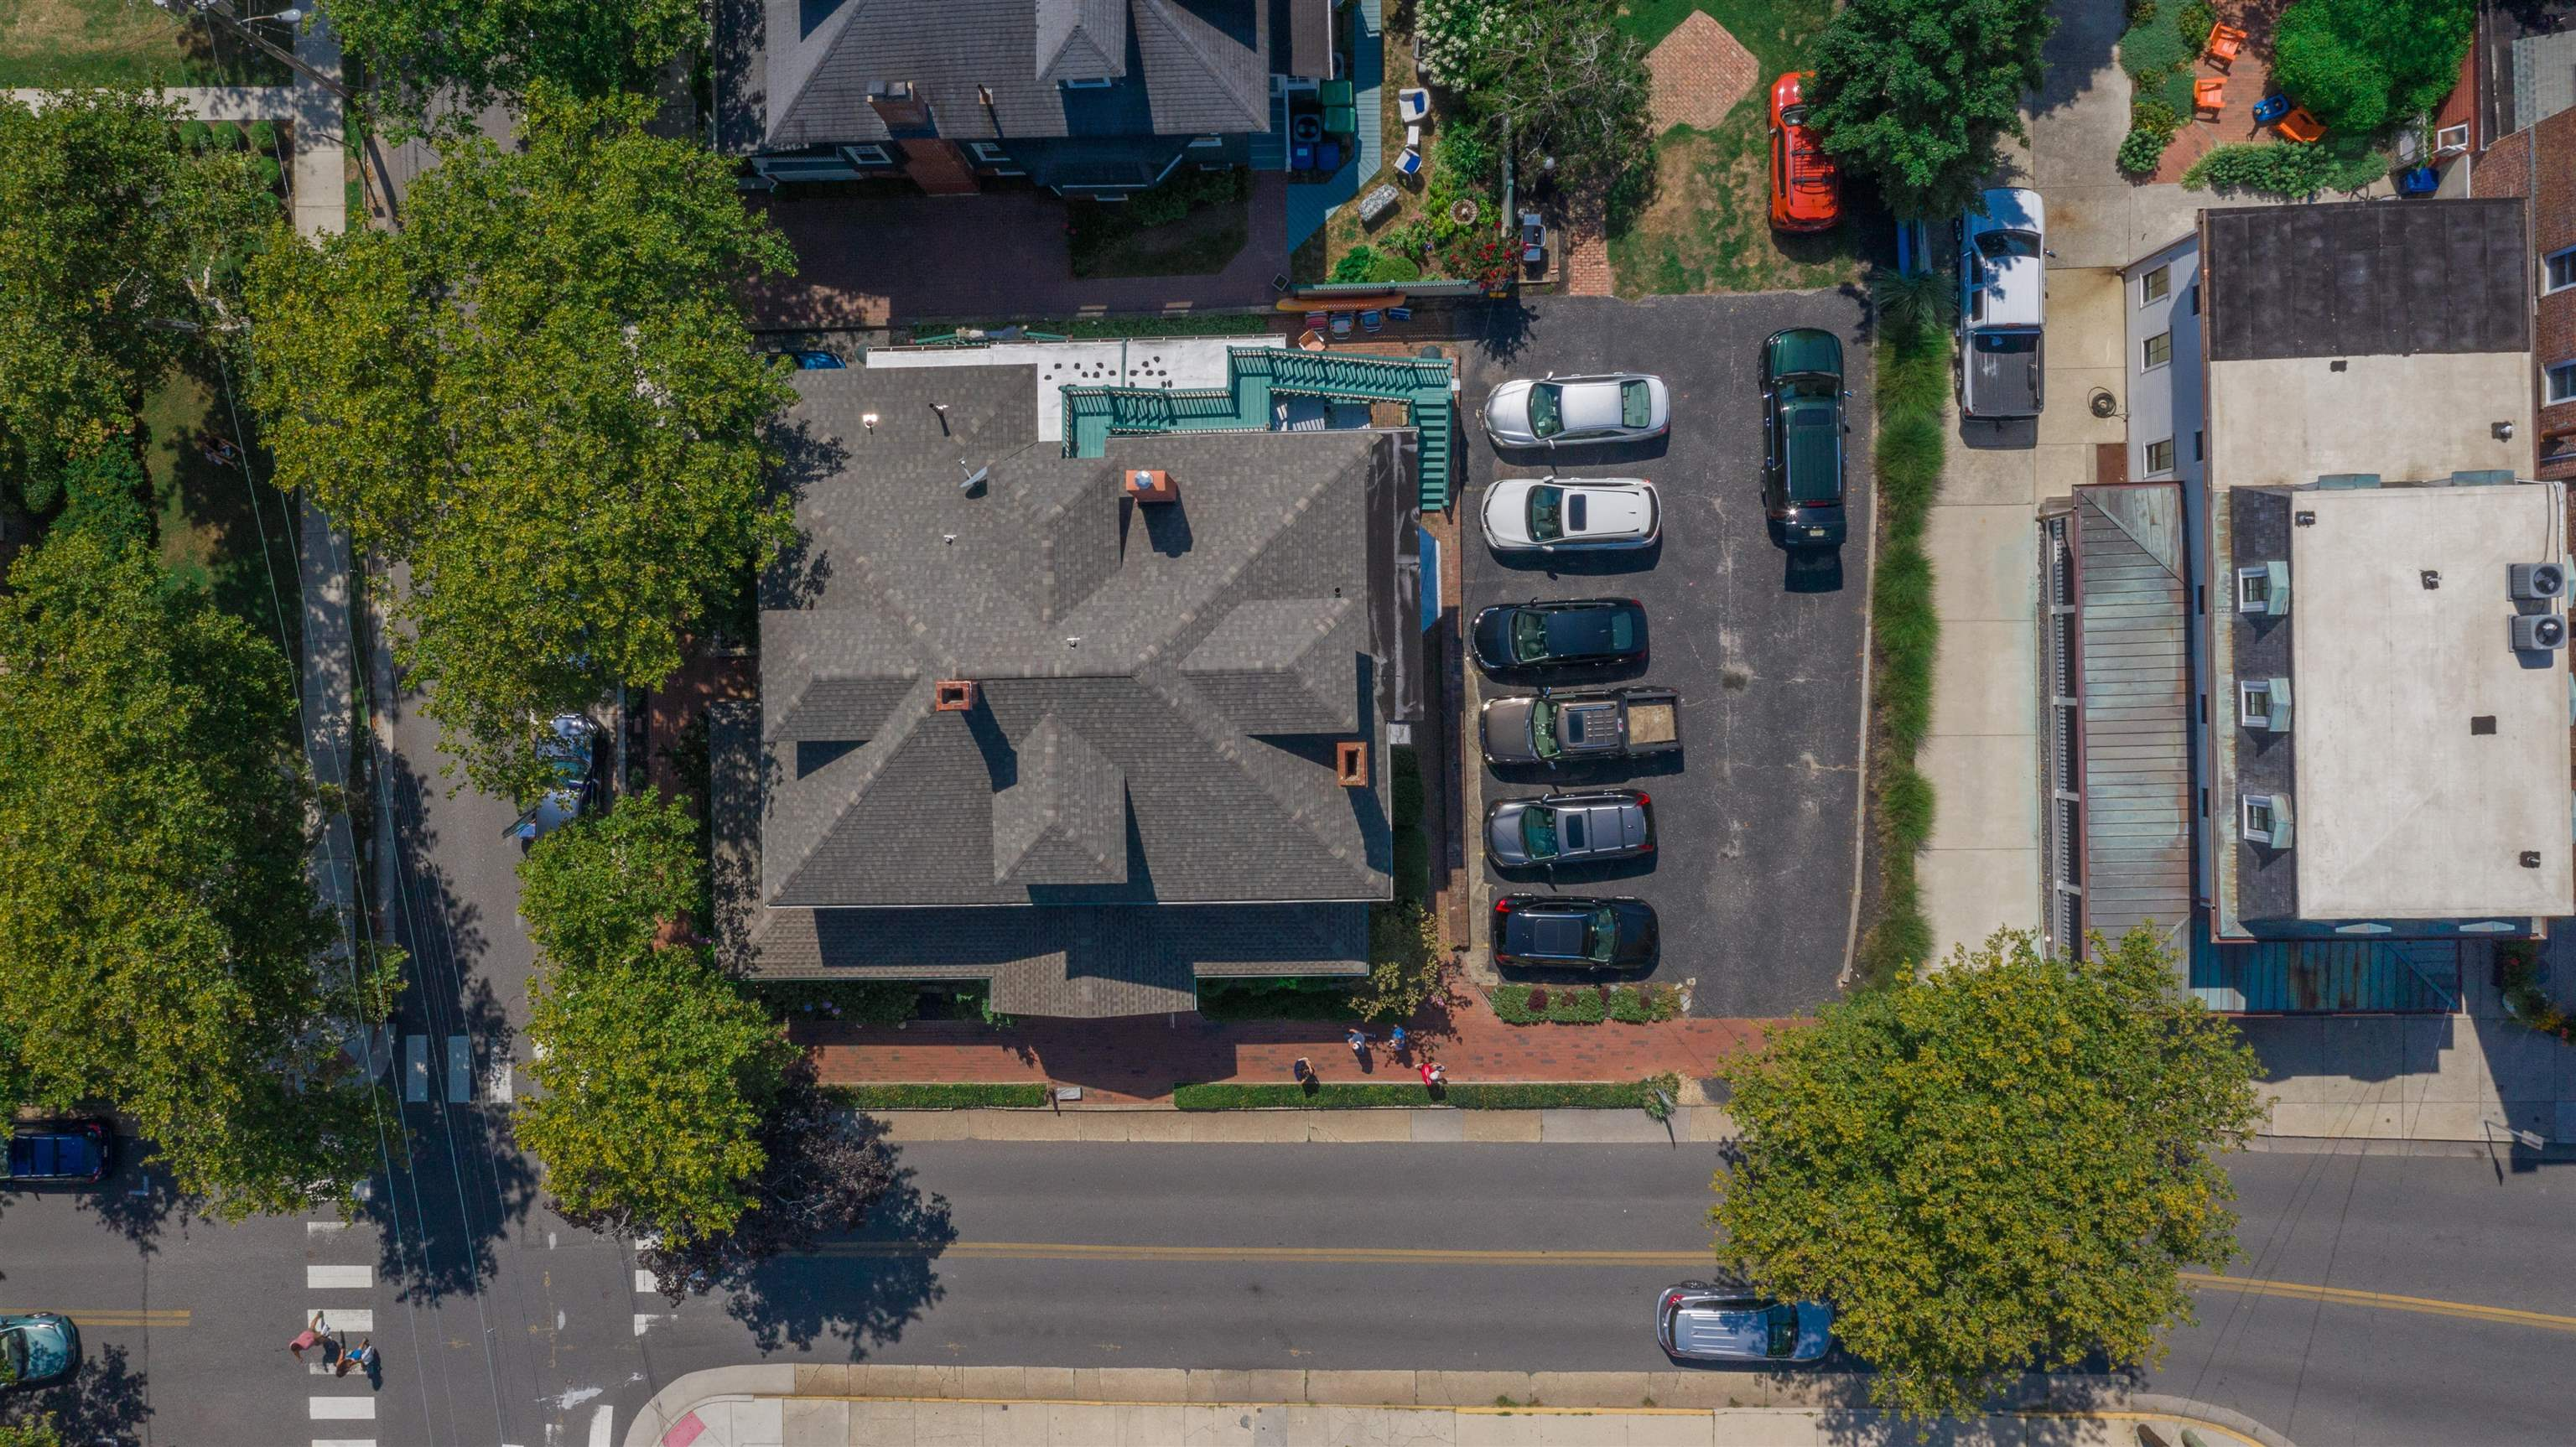 """This is an undeveloped vacant lot in the R-S Zone just steps to both the Washington Street Mall and beaches of Cape May.  The property is currently used as a parking lot for the Captain Mey's Inn with 8 spots and an outside entertainment area. The lot is being offered """"AS IS"""" and interested buyers should review any specific development plans with legal counsel."""